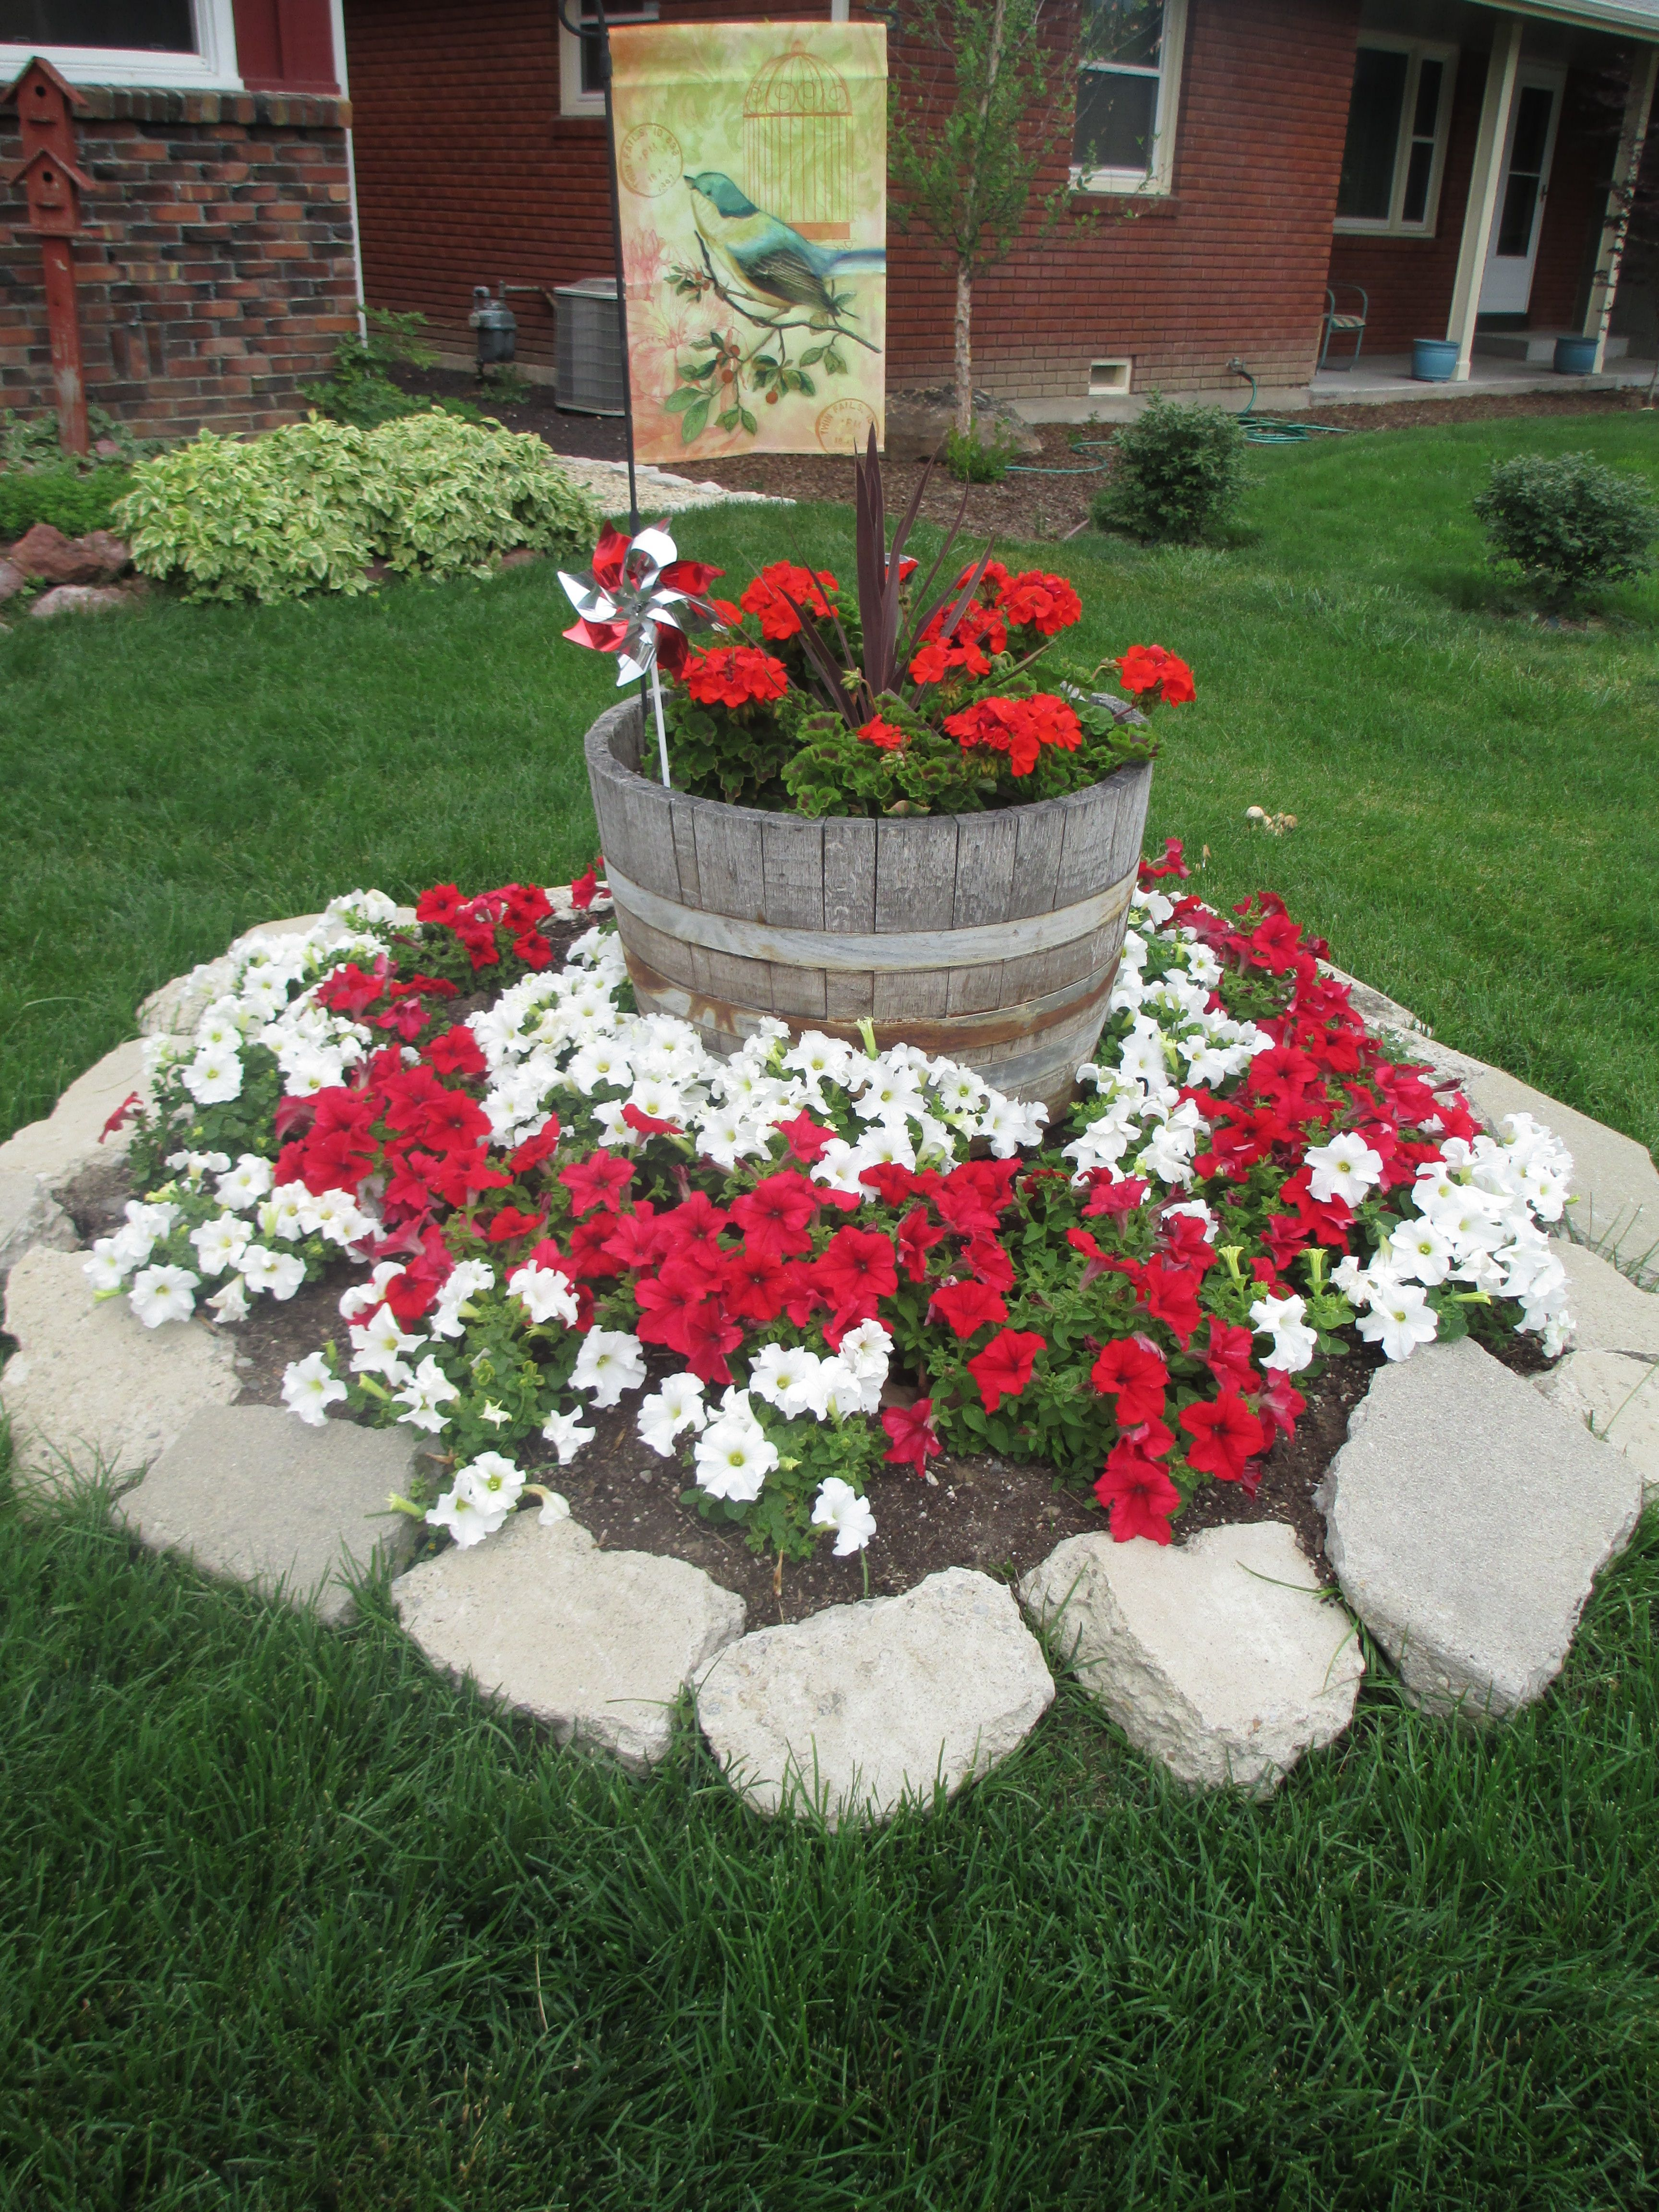 This Flower Bed Has Been Repurposed Following The Removal Of A Tree The Whiskey Barrel Was Placed On The Tree Stump Then Petunias Were Planted In The Flowerbed In 2020